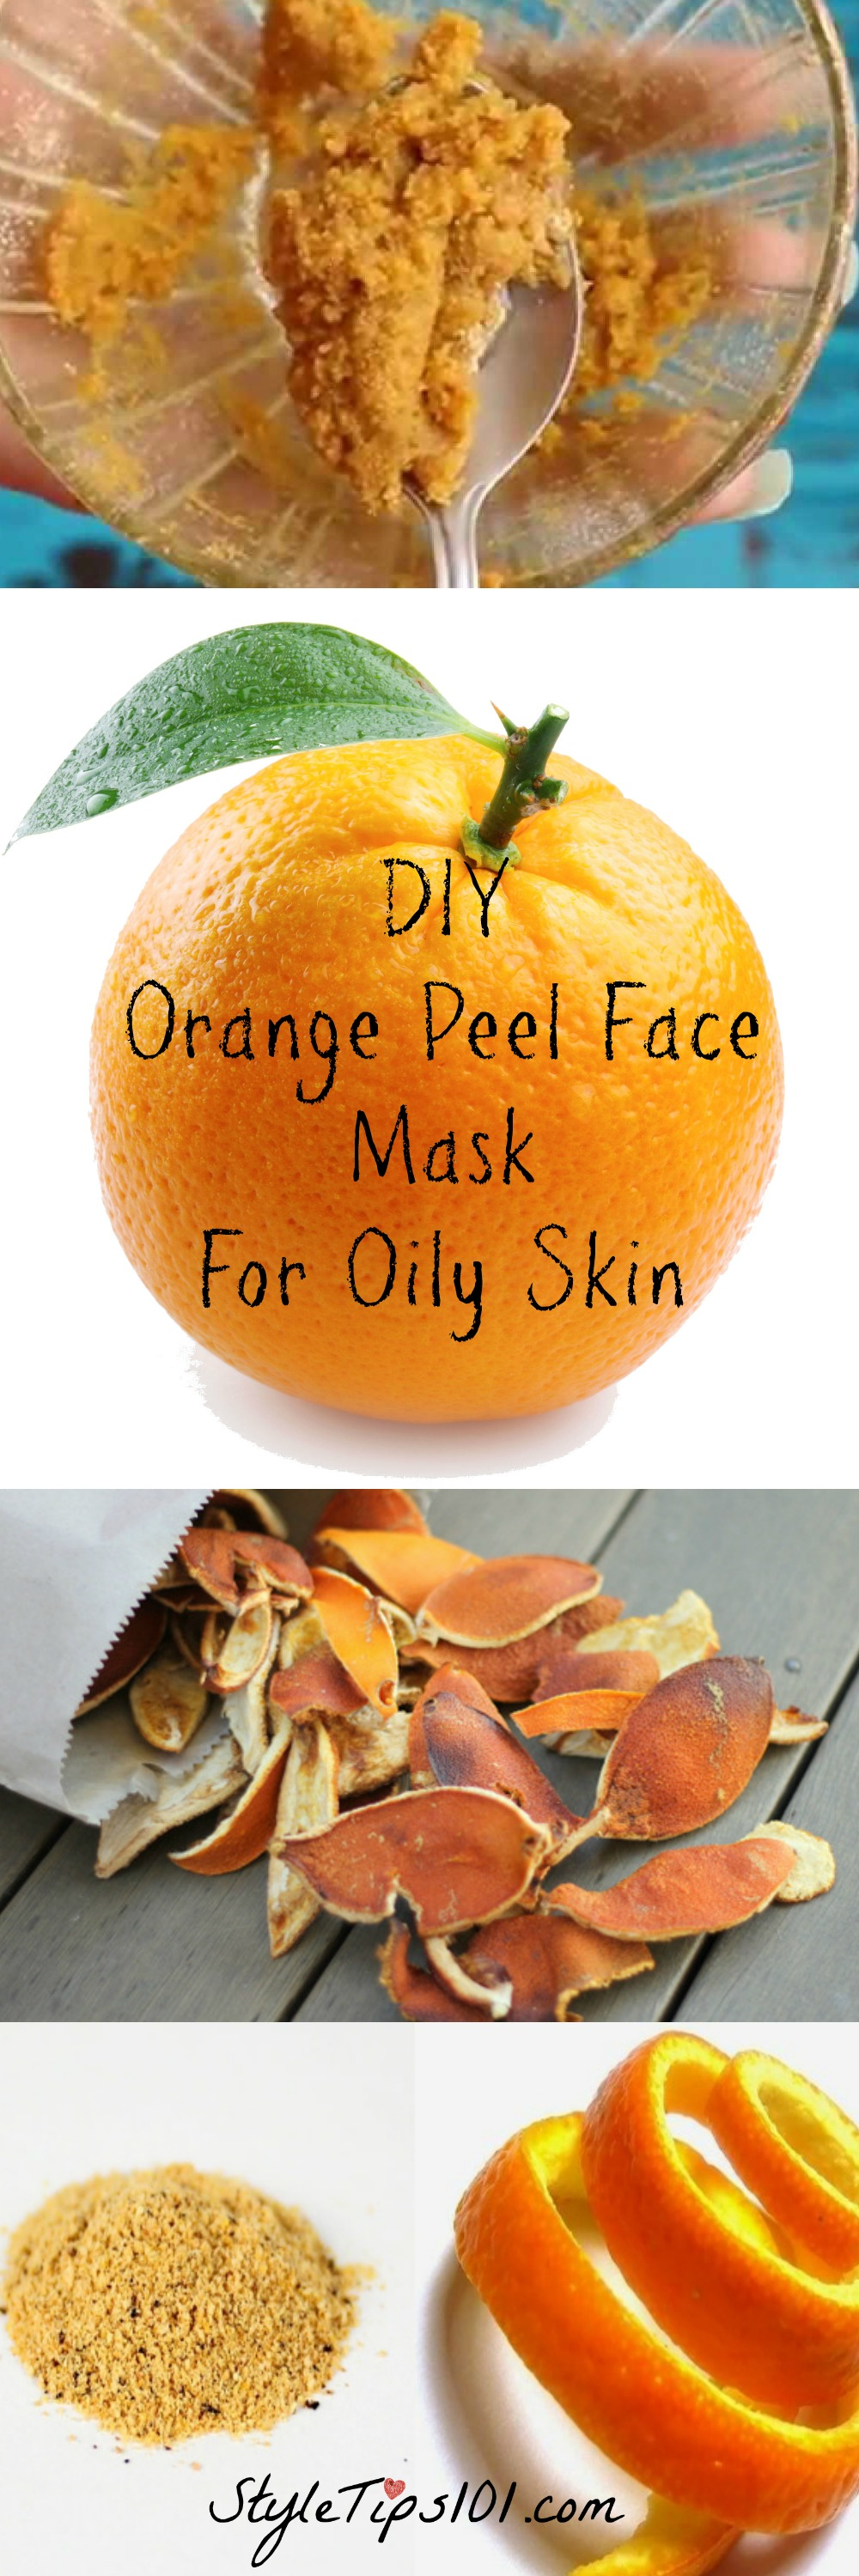 DIY Orange Peel Face Mask